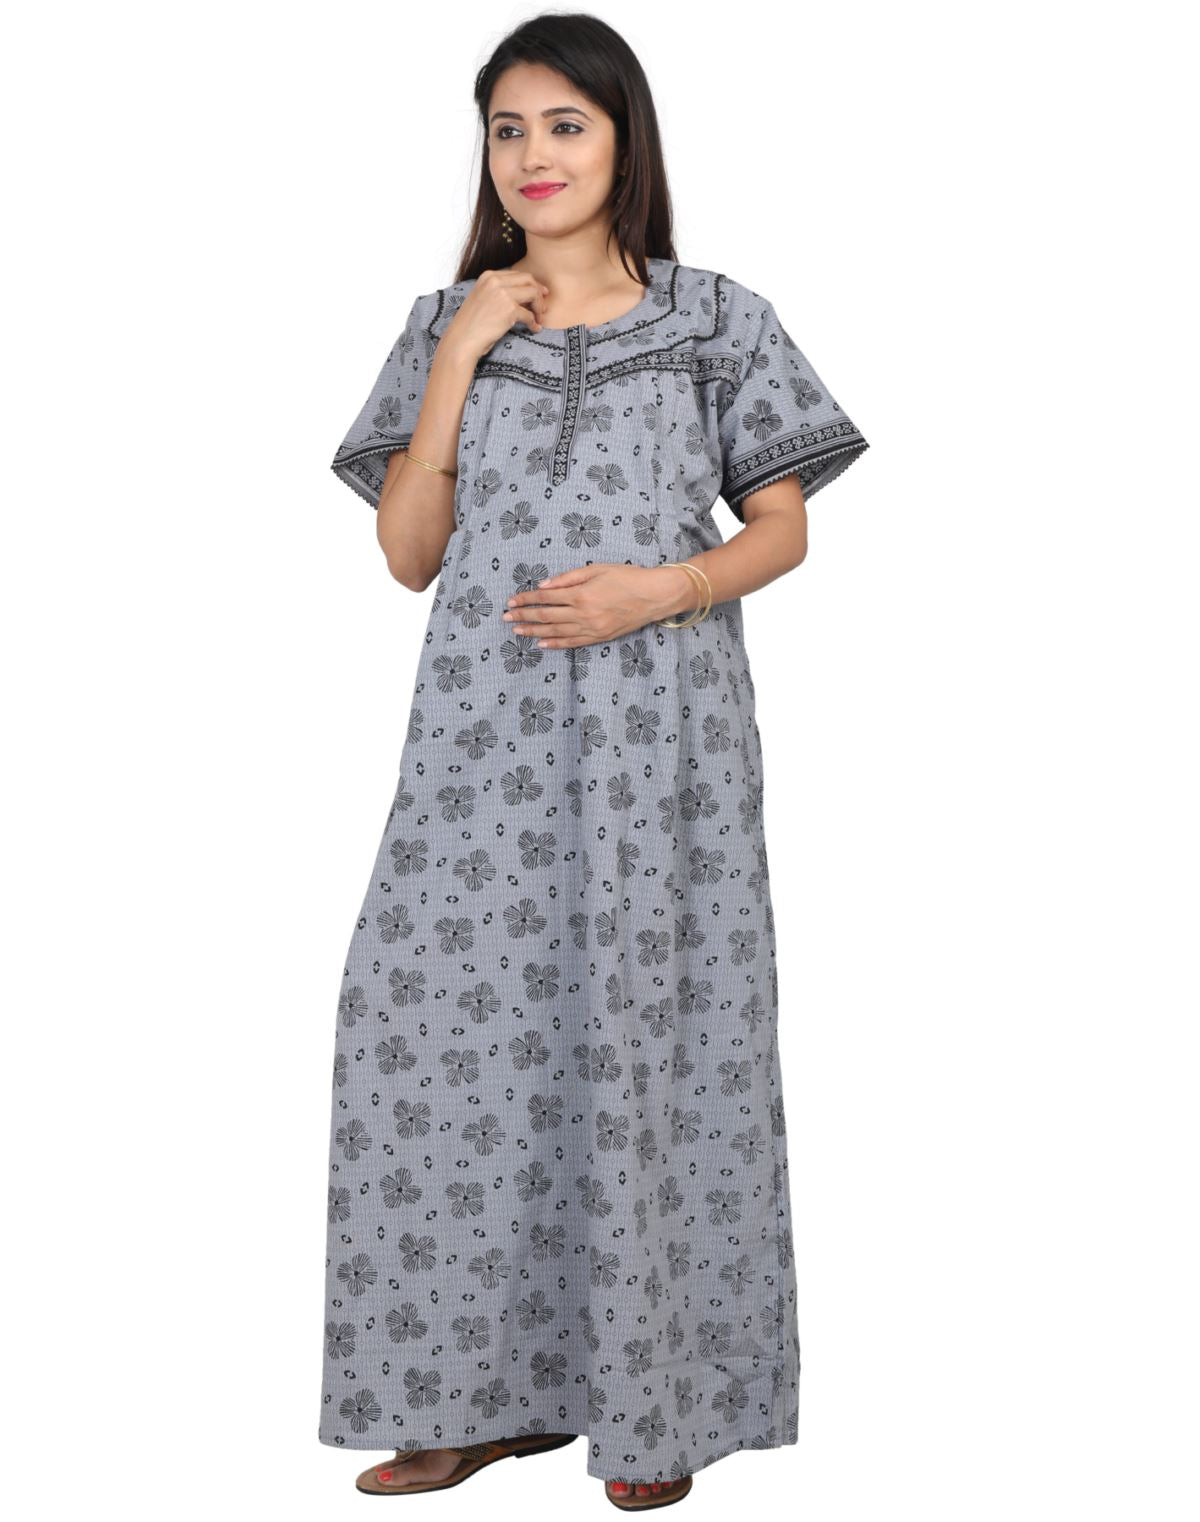 2af5c036f4248 Womens 100% Cotton Feeding Nightgown - Vertical Side Zip Nursing Nightwear  NH - Nighty House